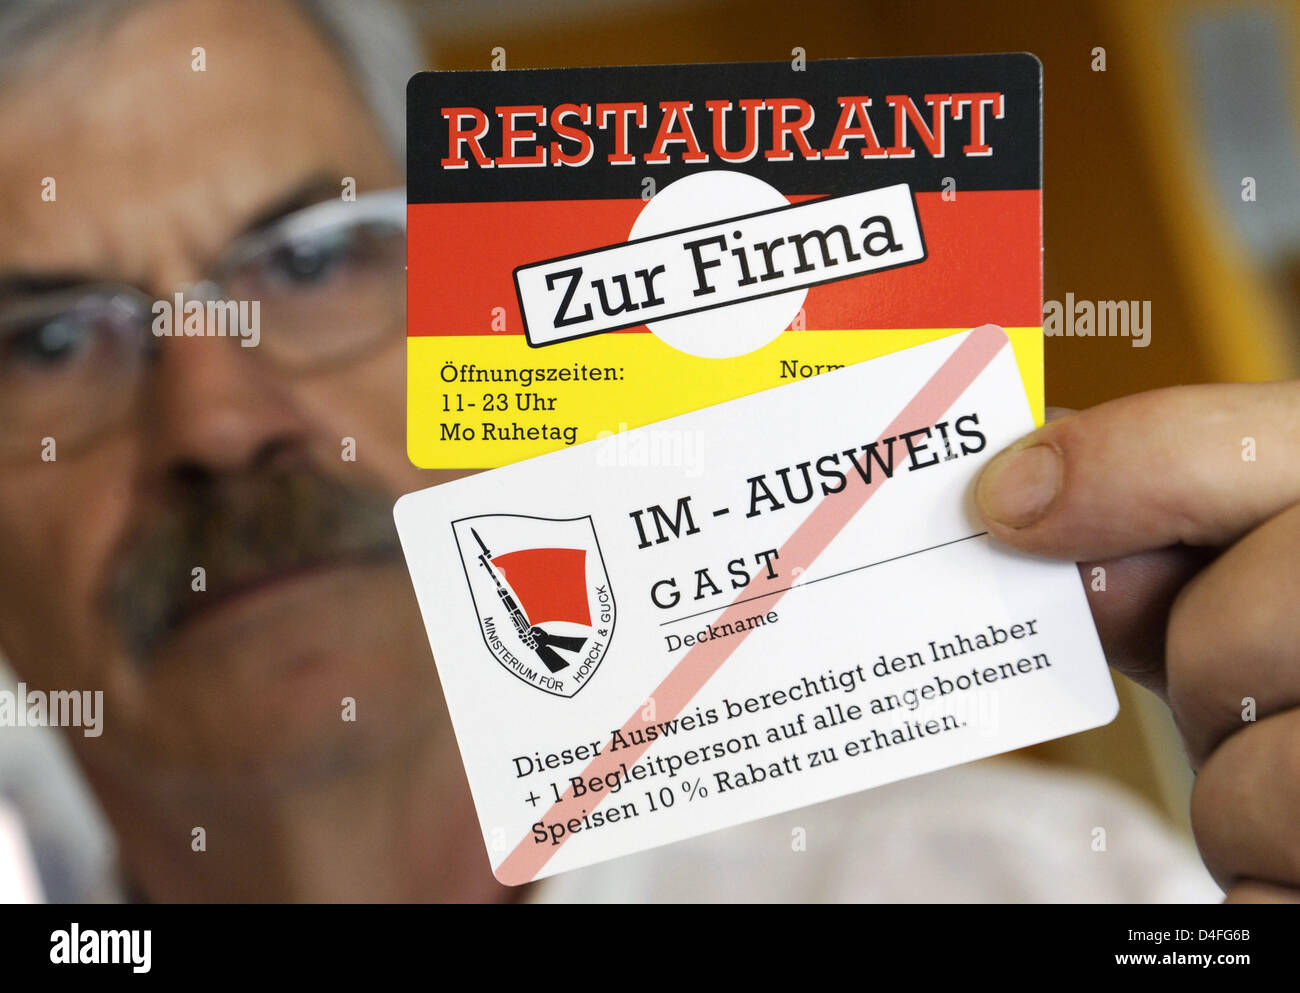 Willi Gau shows permanent guests' discount cards designed as 'IM id-cards' (IM=inofficial agent) at - Stock Image